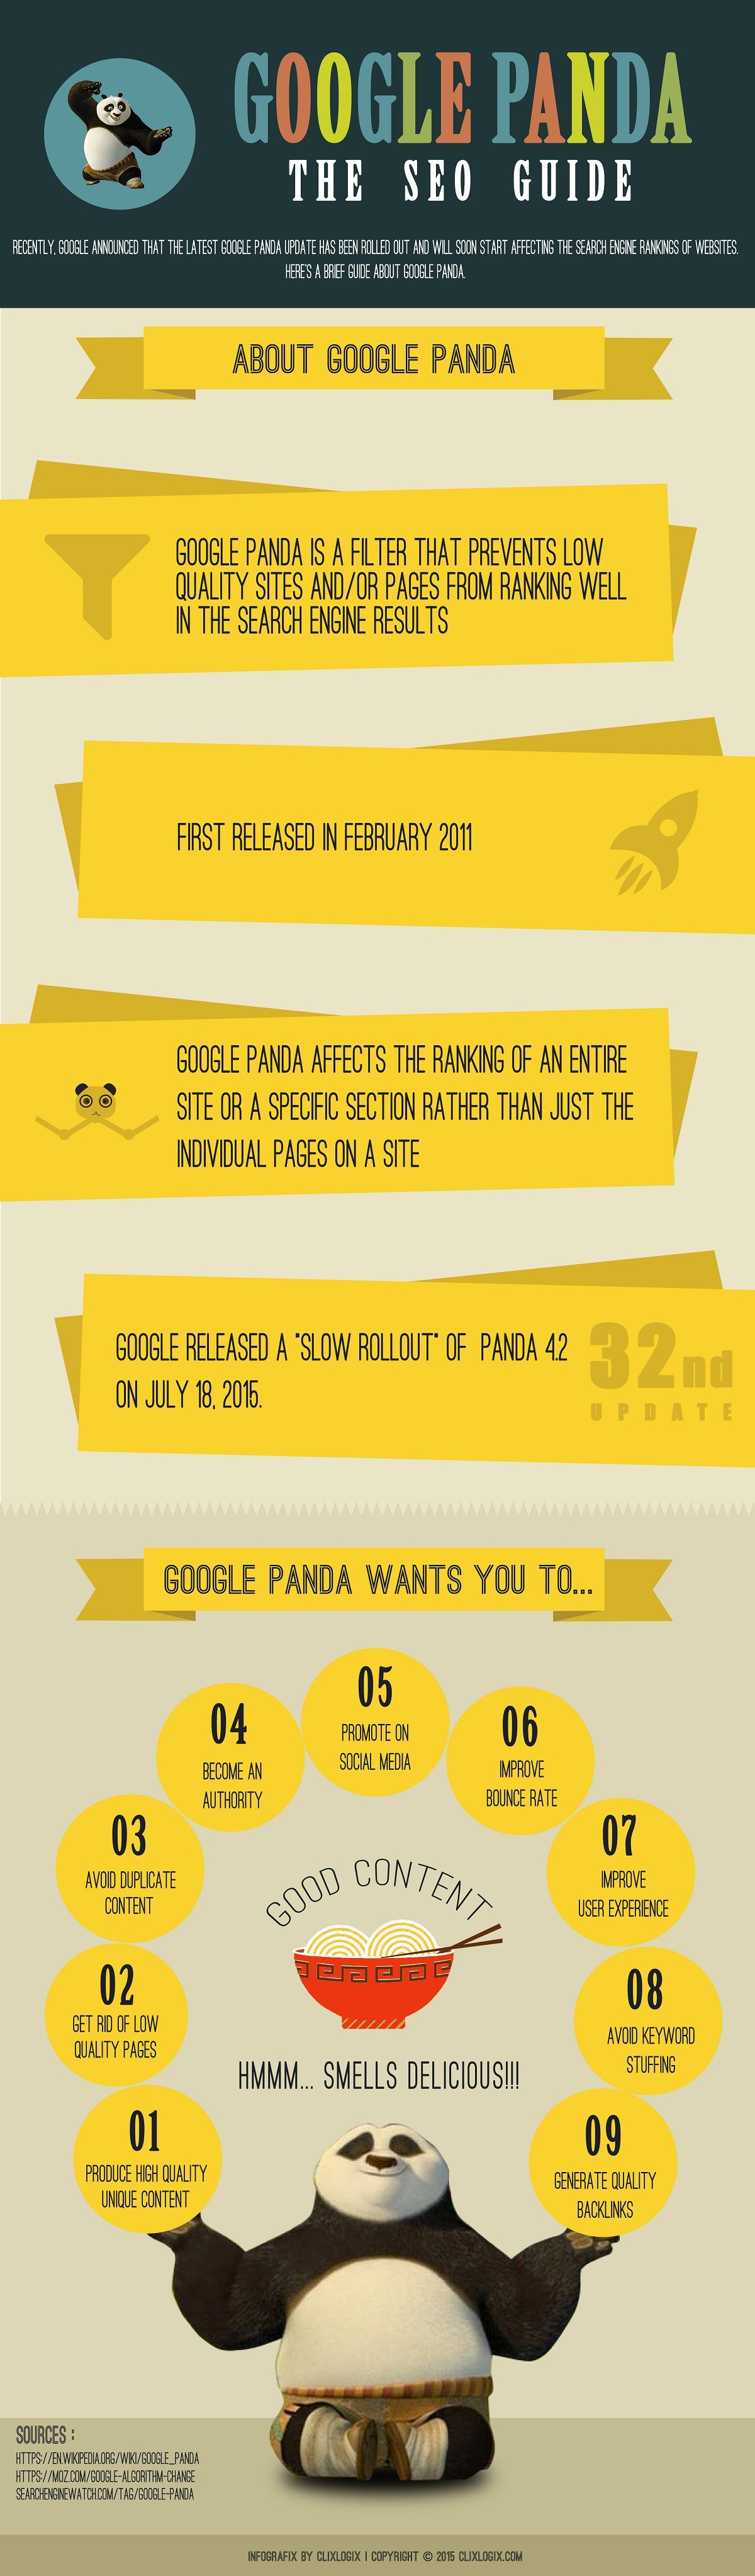 Google Panda: The SEO Guide